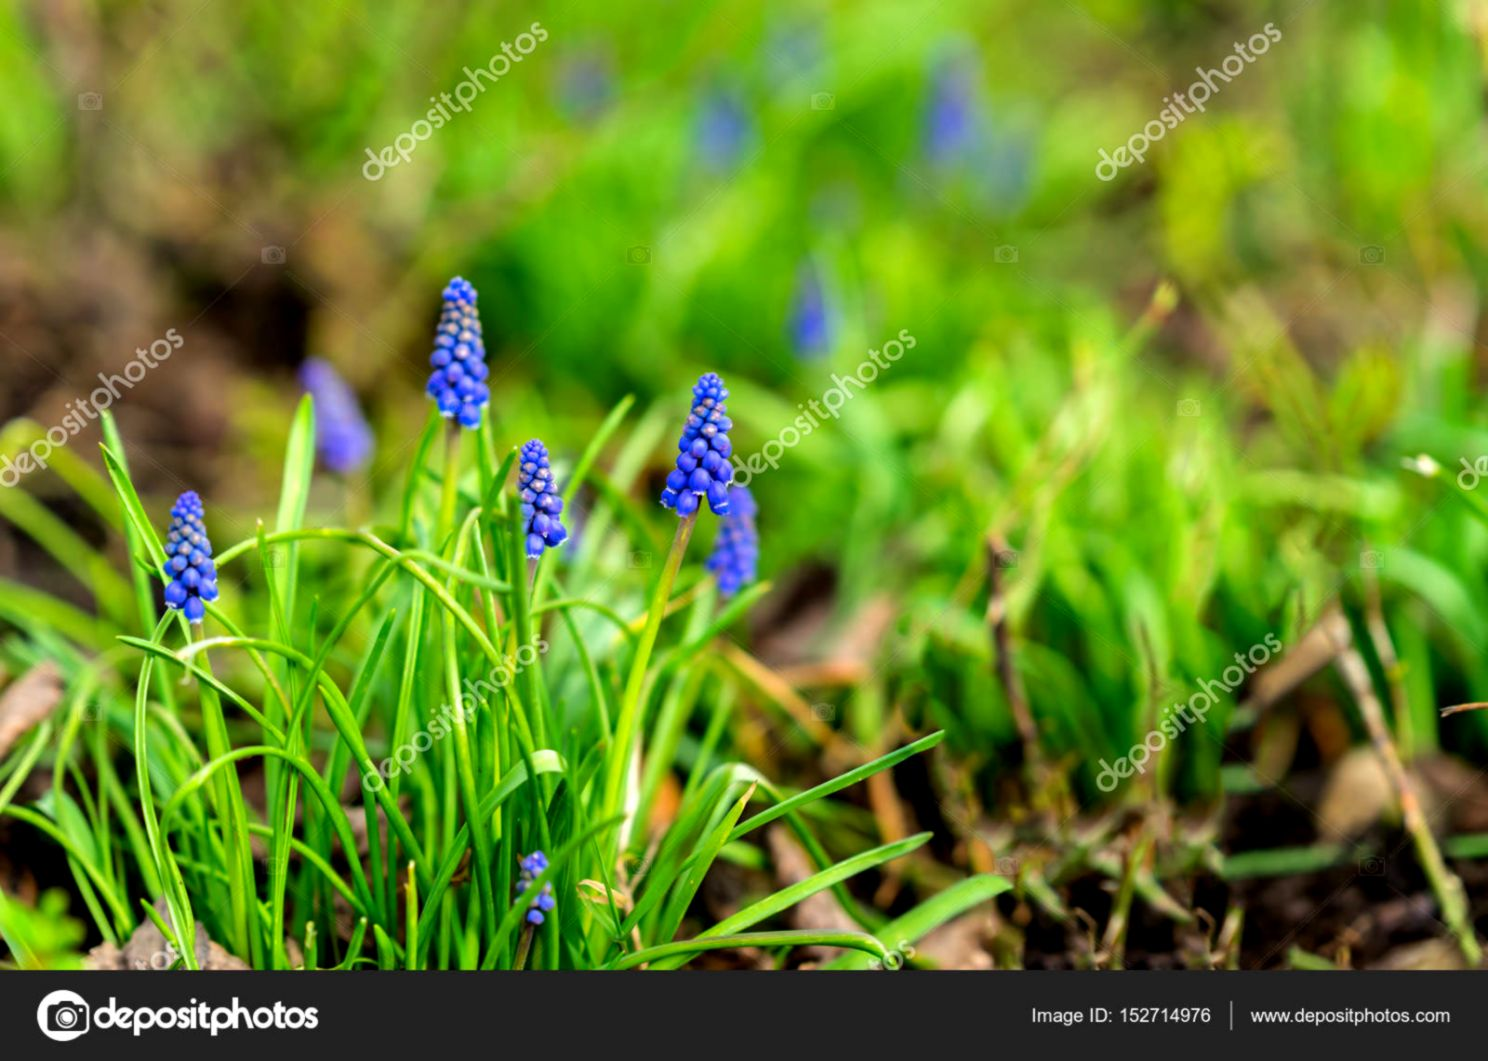 Natural flower background Beautiful muscari hyacinth blooming on